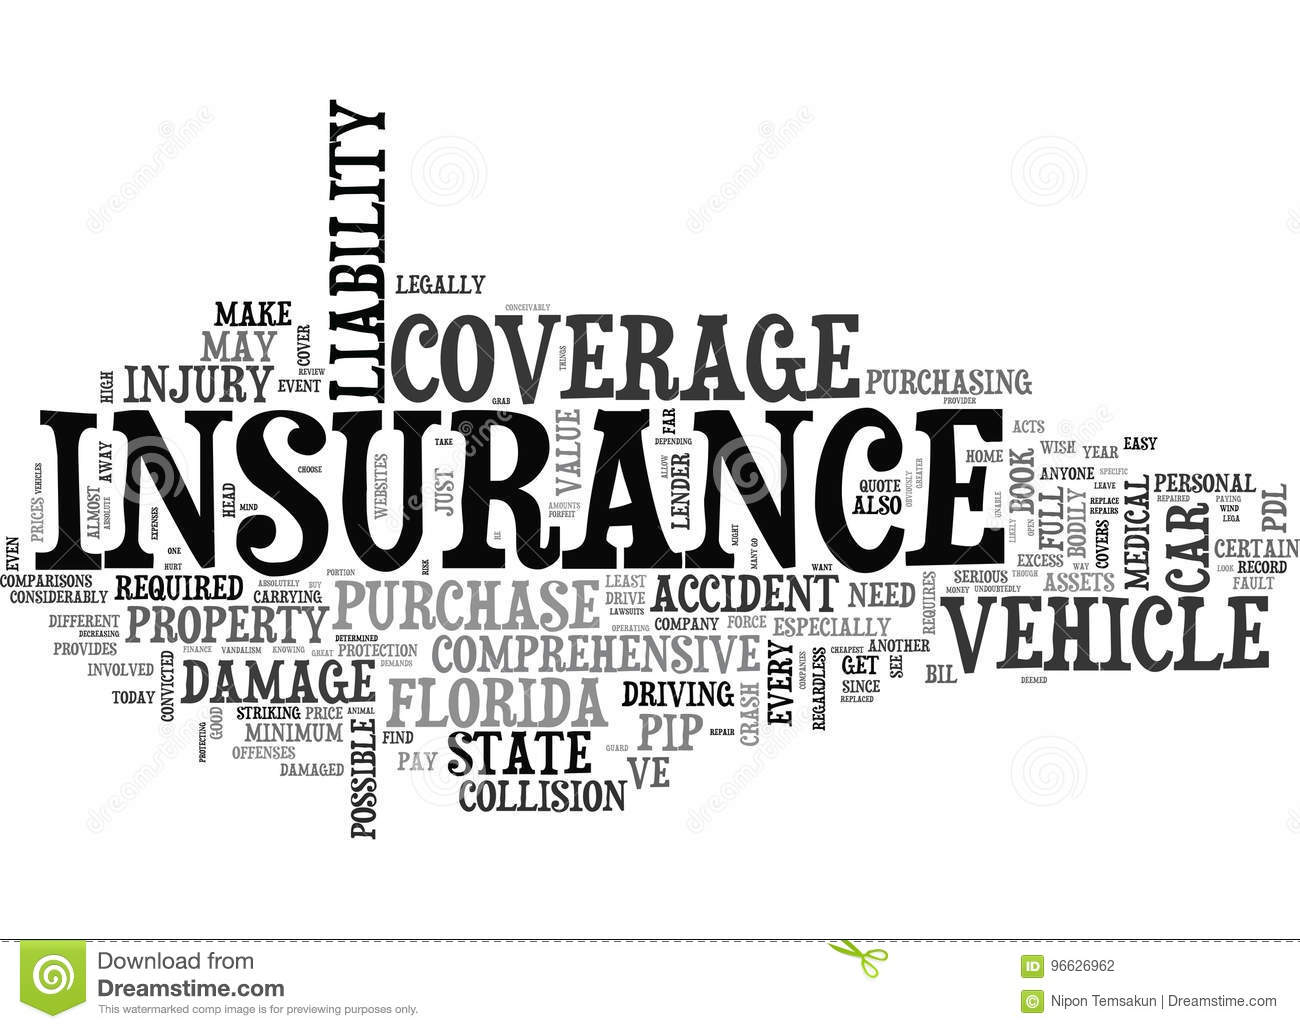 What To Look For In A Full Coverage Car Insurance Quote In Florida